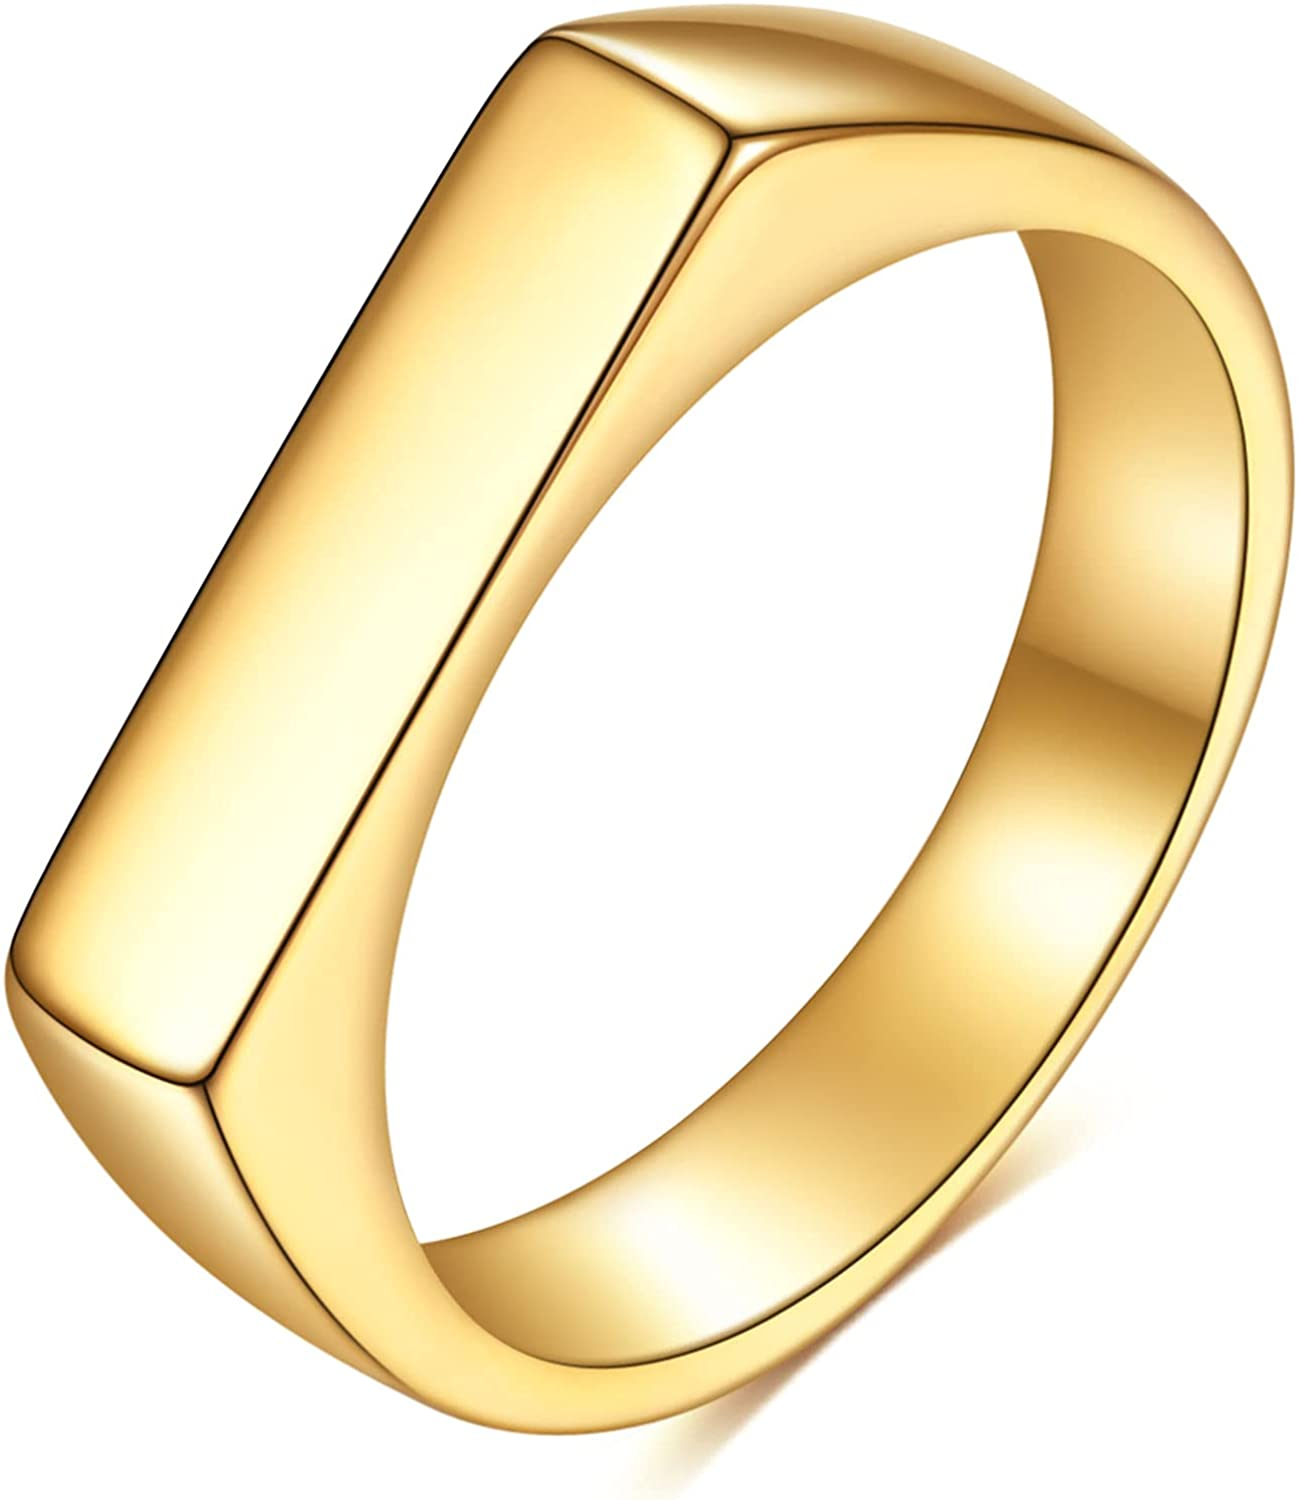 4mm 18K Gold Plated Stainless Steel Stackable Geometrical Shape Wedding Band Ring